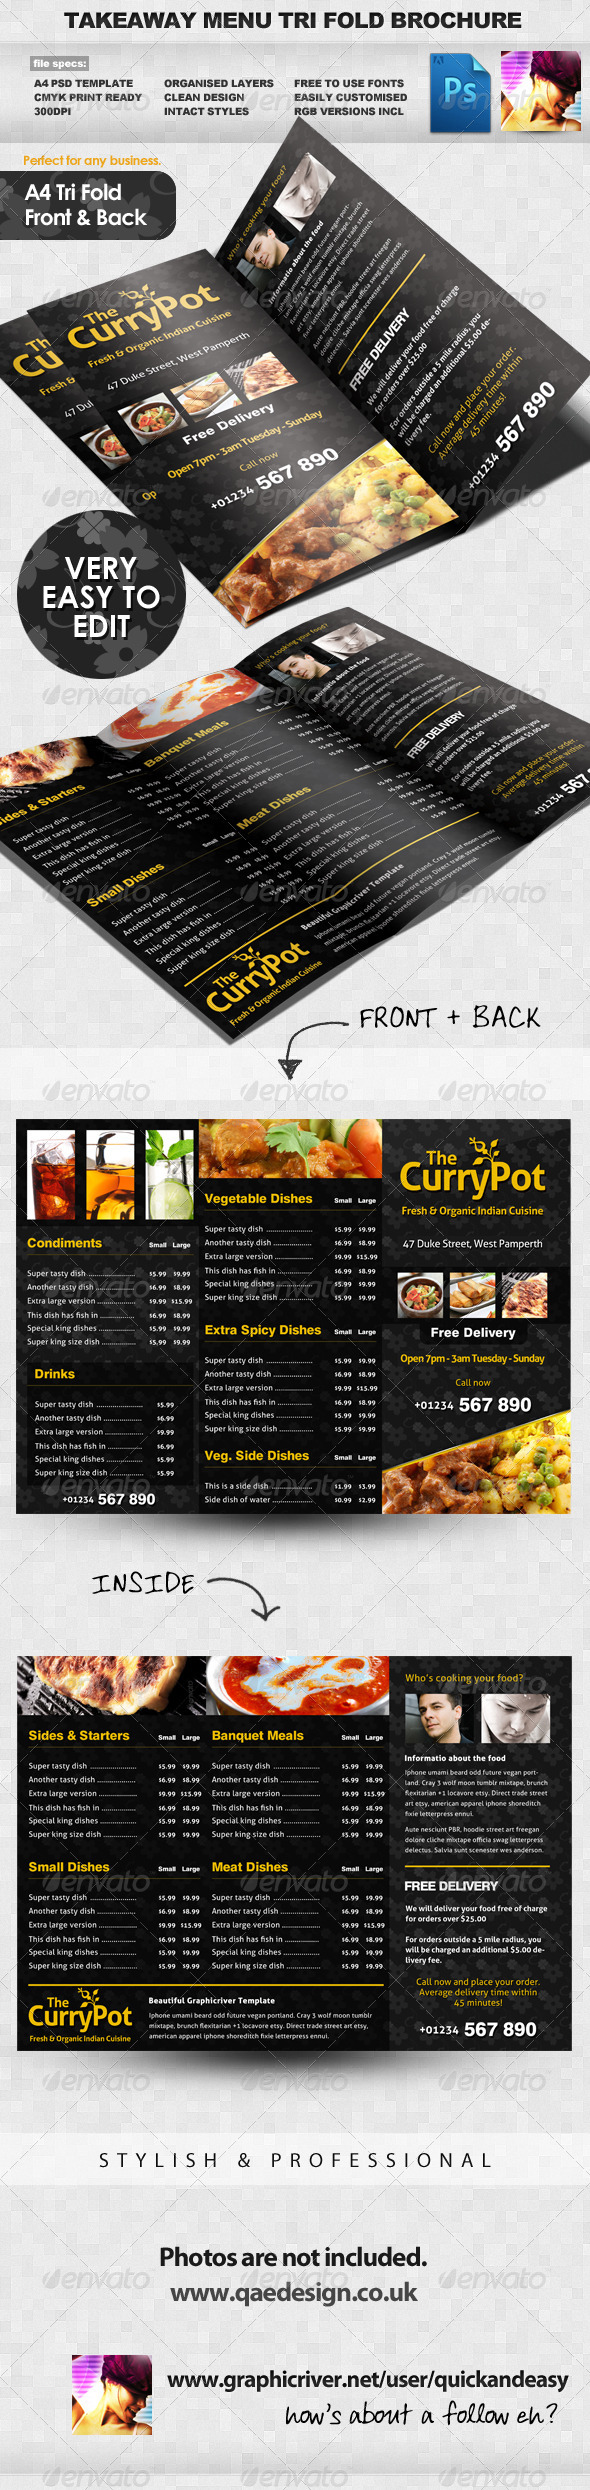 Takeaway Food Menu Trifold Brochure Template - Food Menus Print Templates